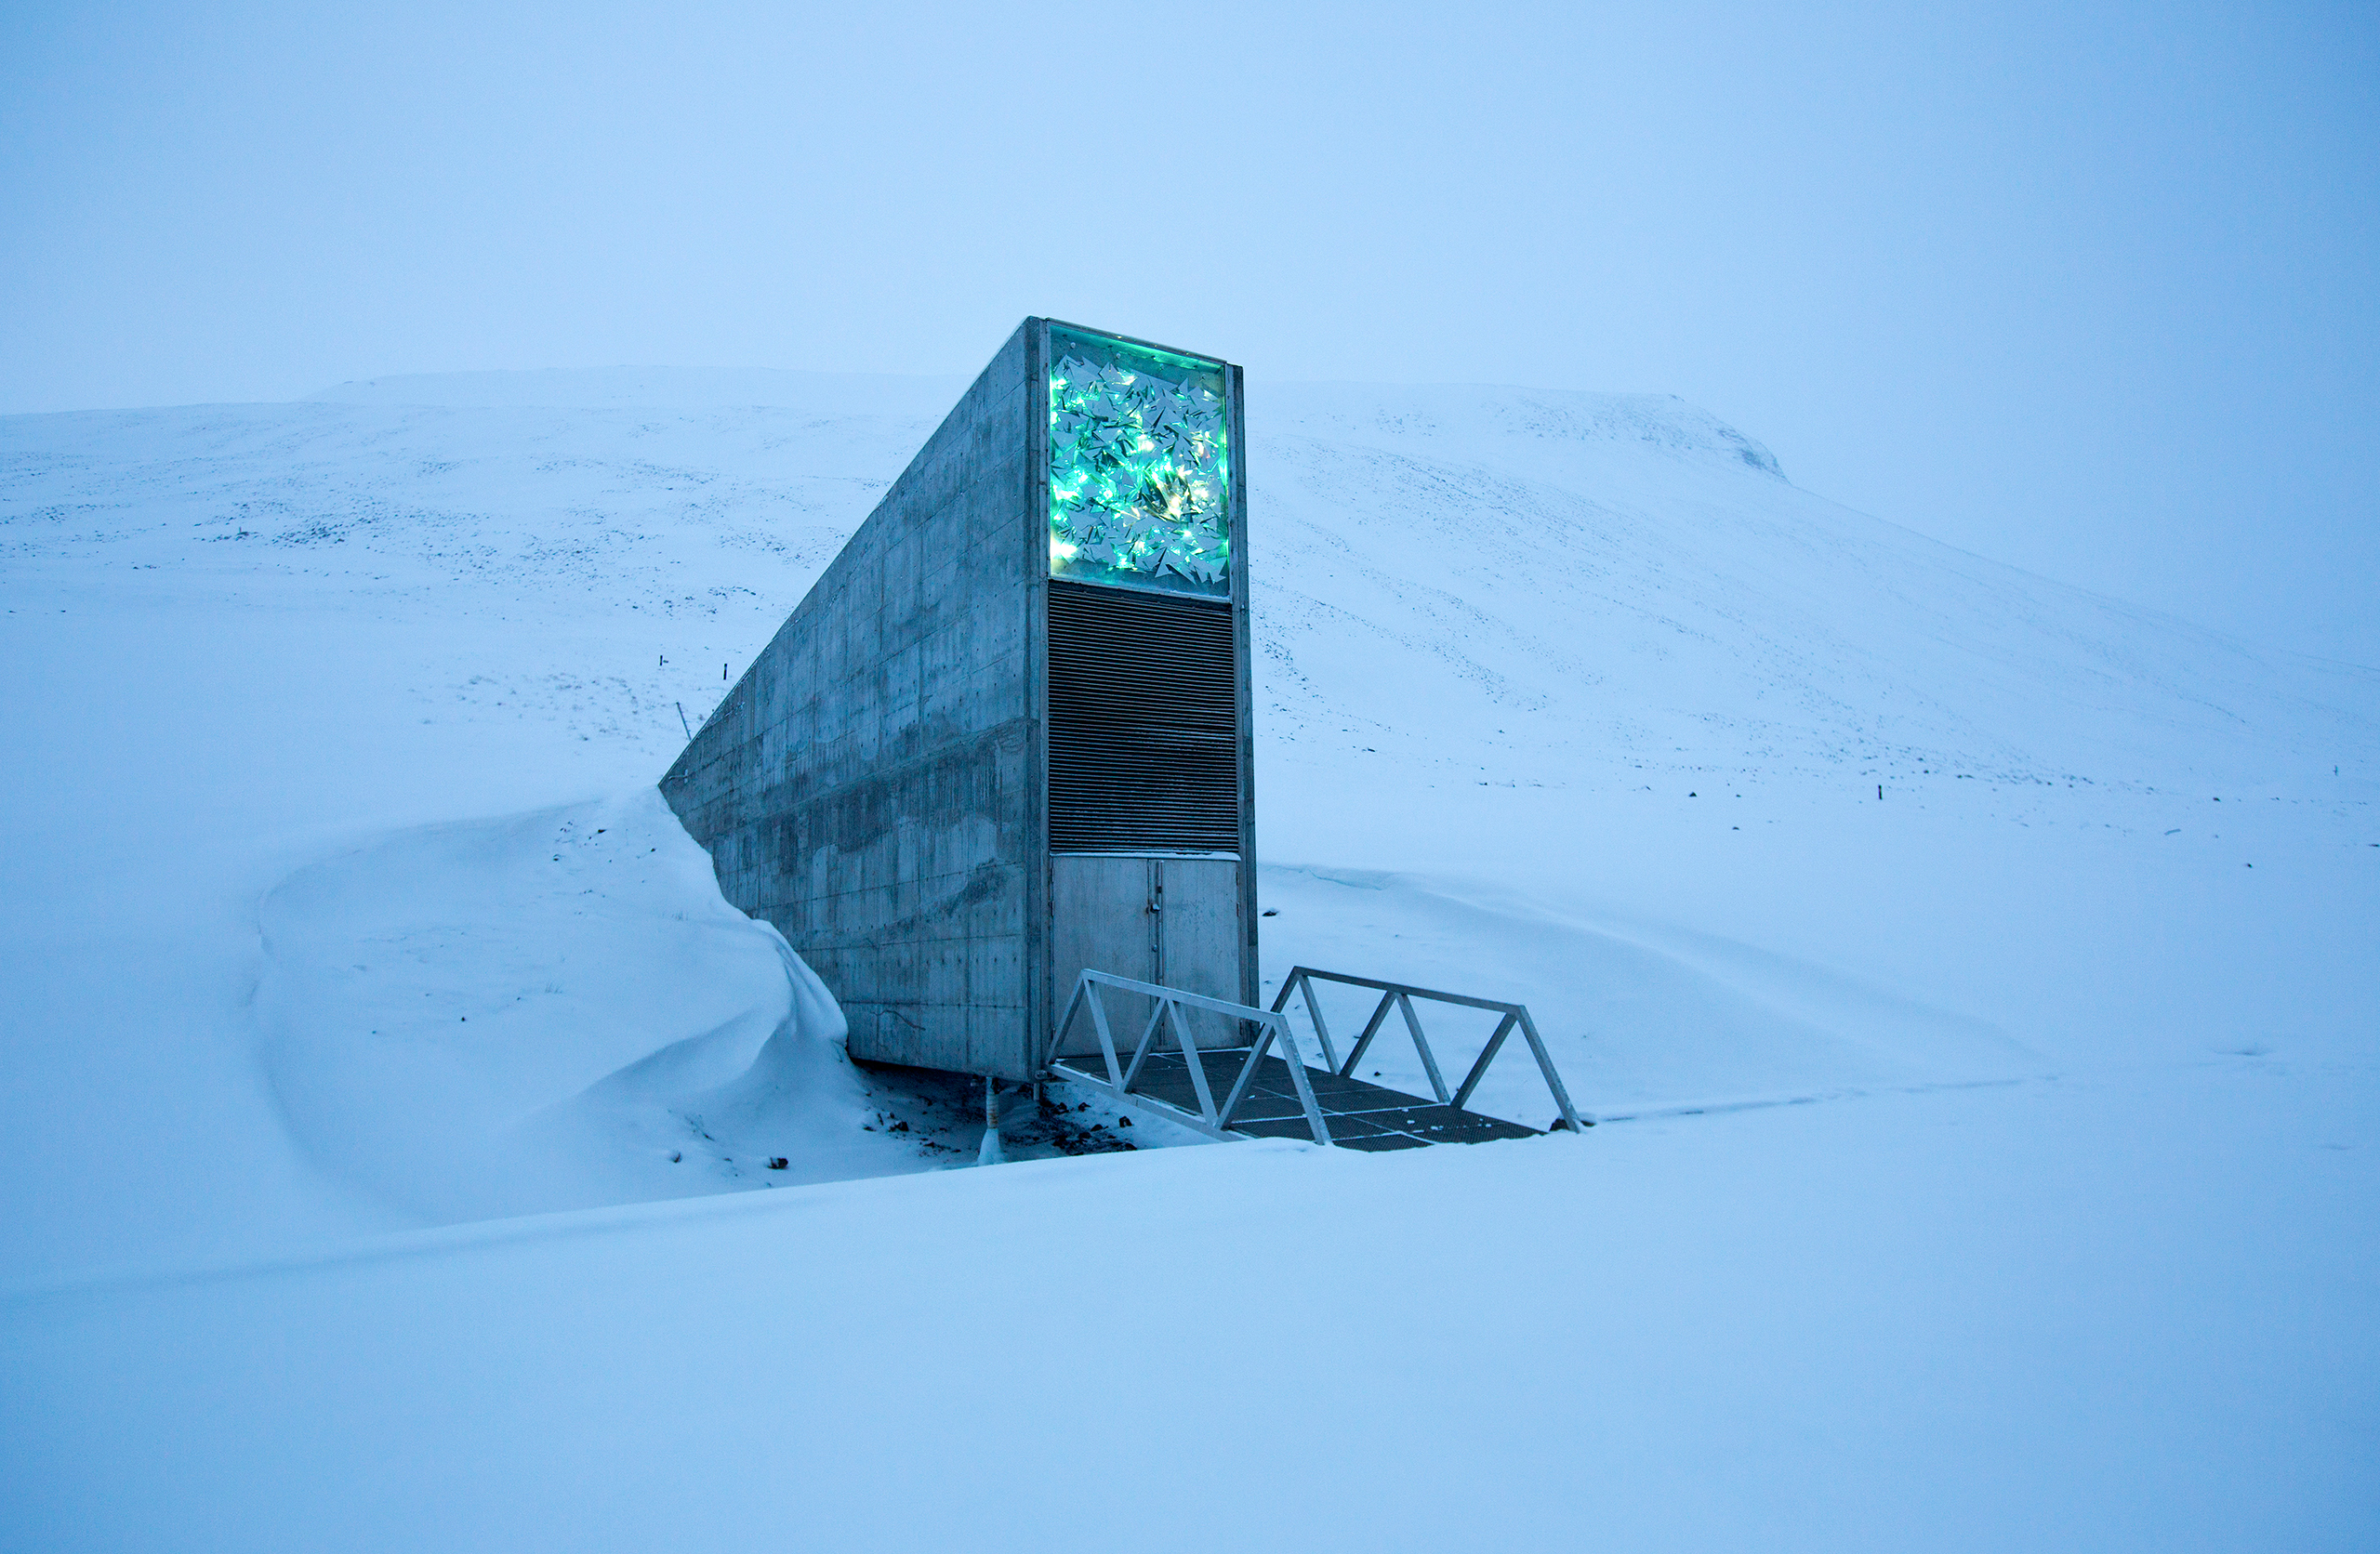 The entrance to the Svalbard Global Seed Vault